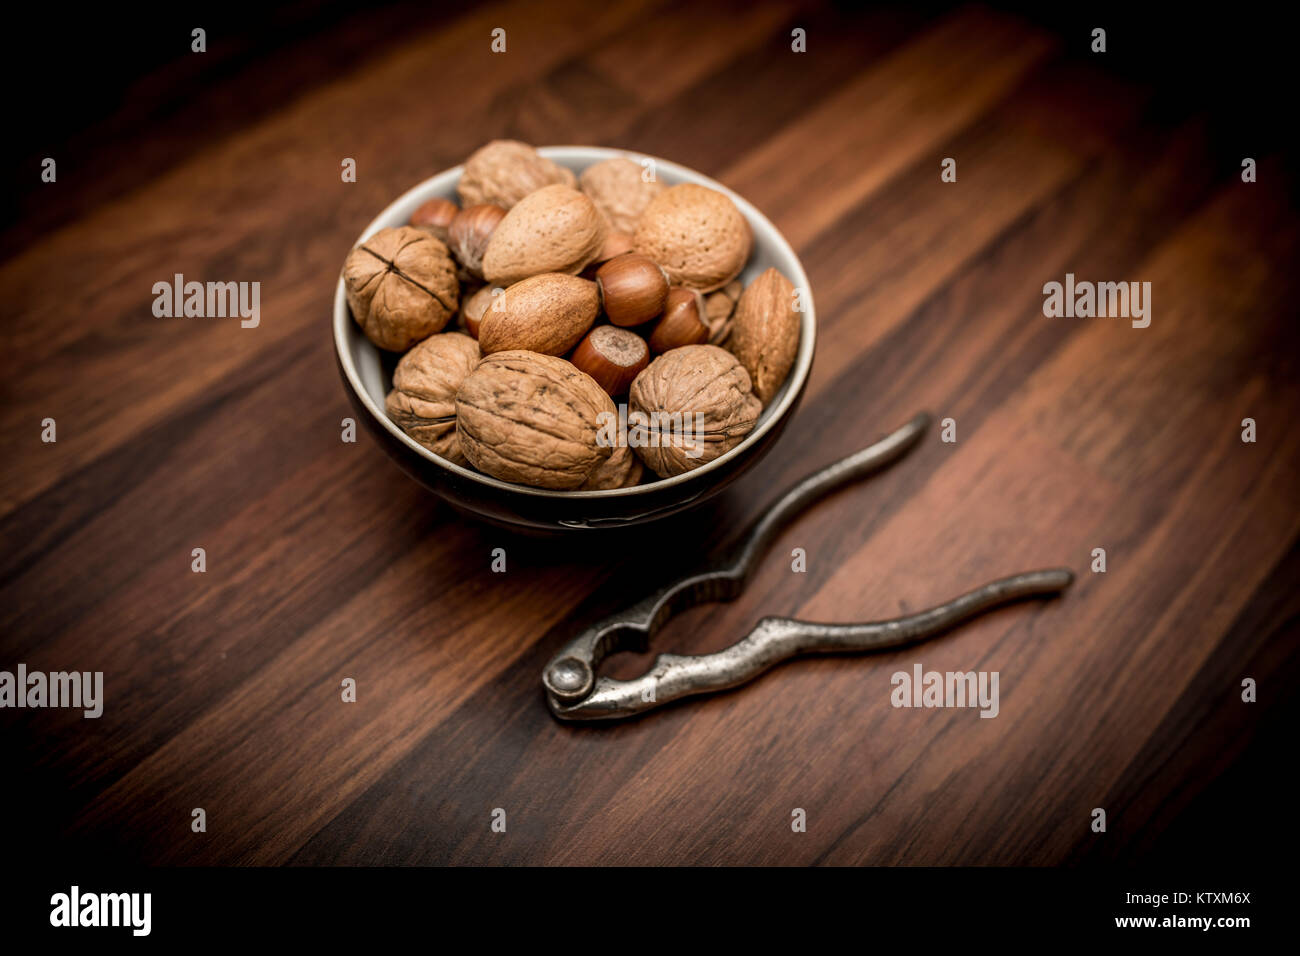 A bowl of mixed whole nuts in their shells including walnuts, hazelnuts, almonds and pecans with nut cracker - Stock Image